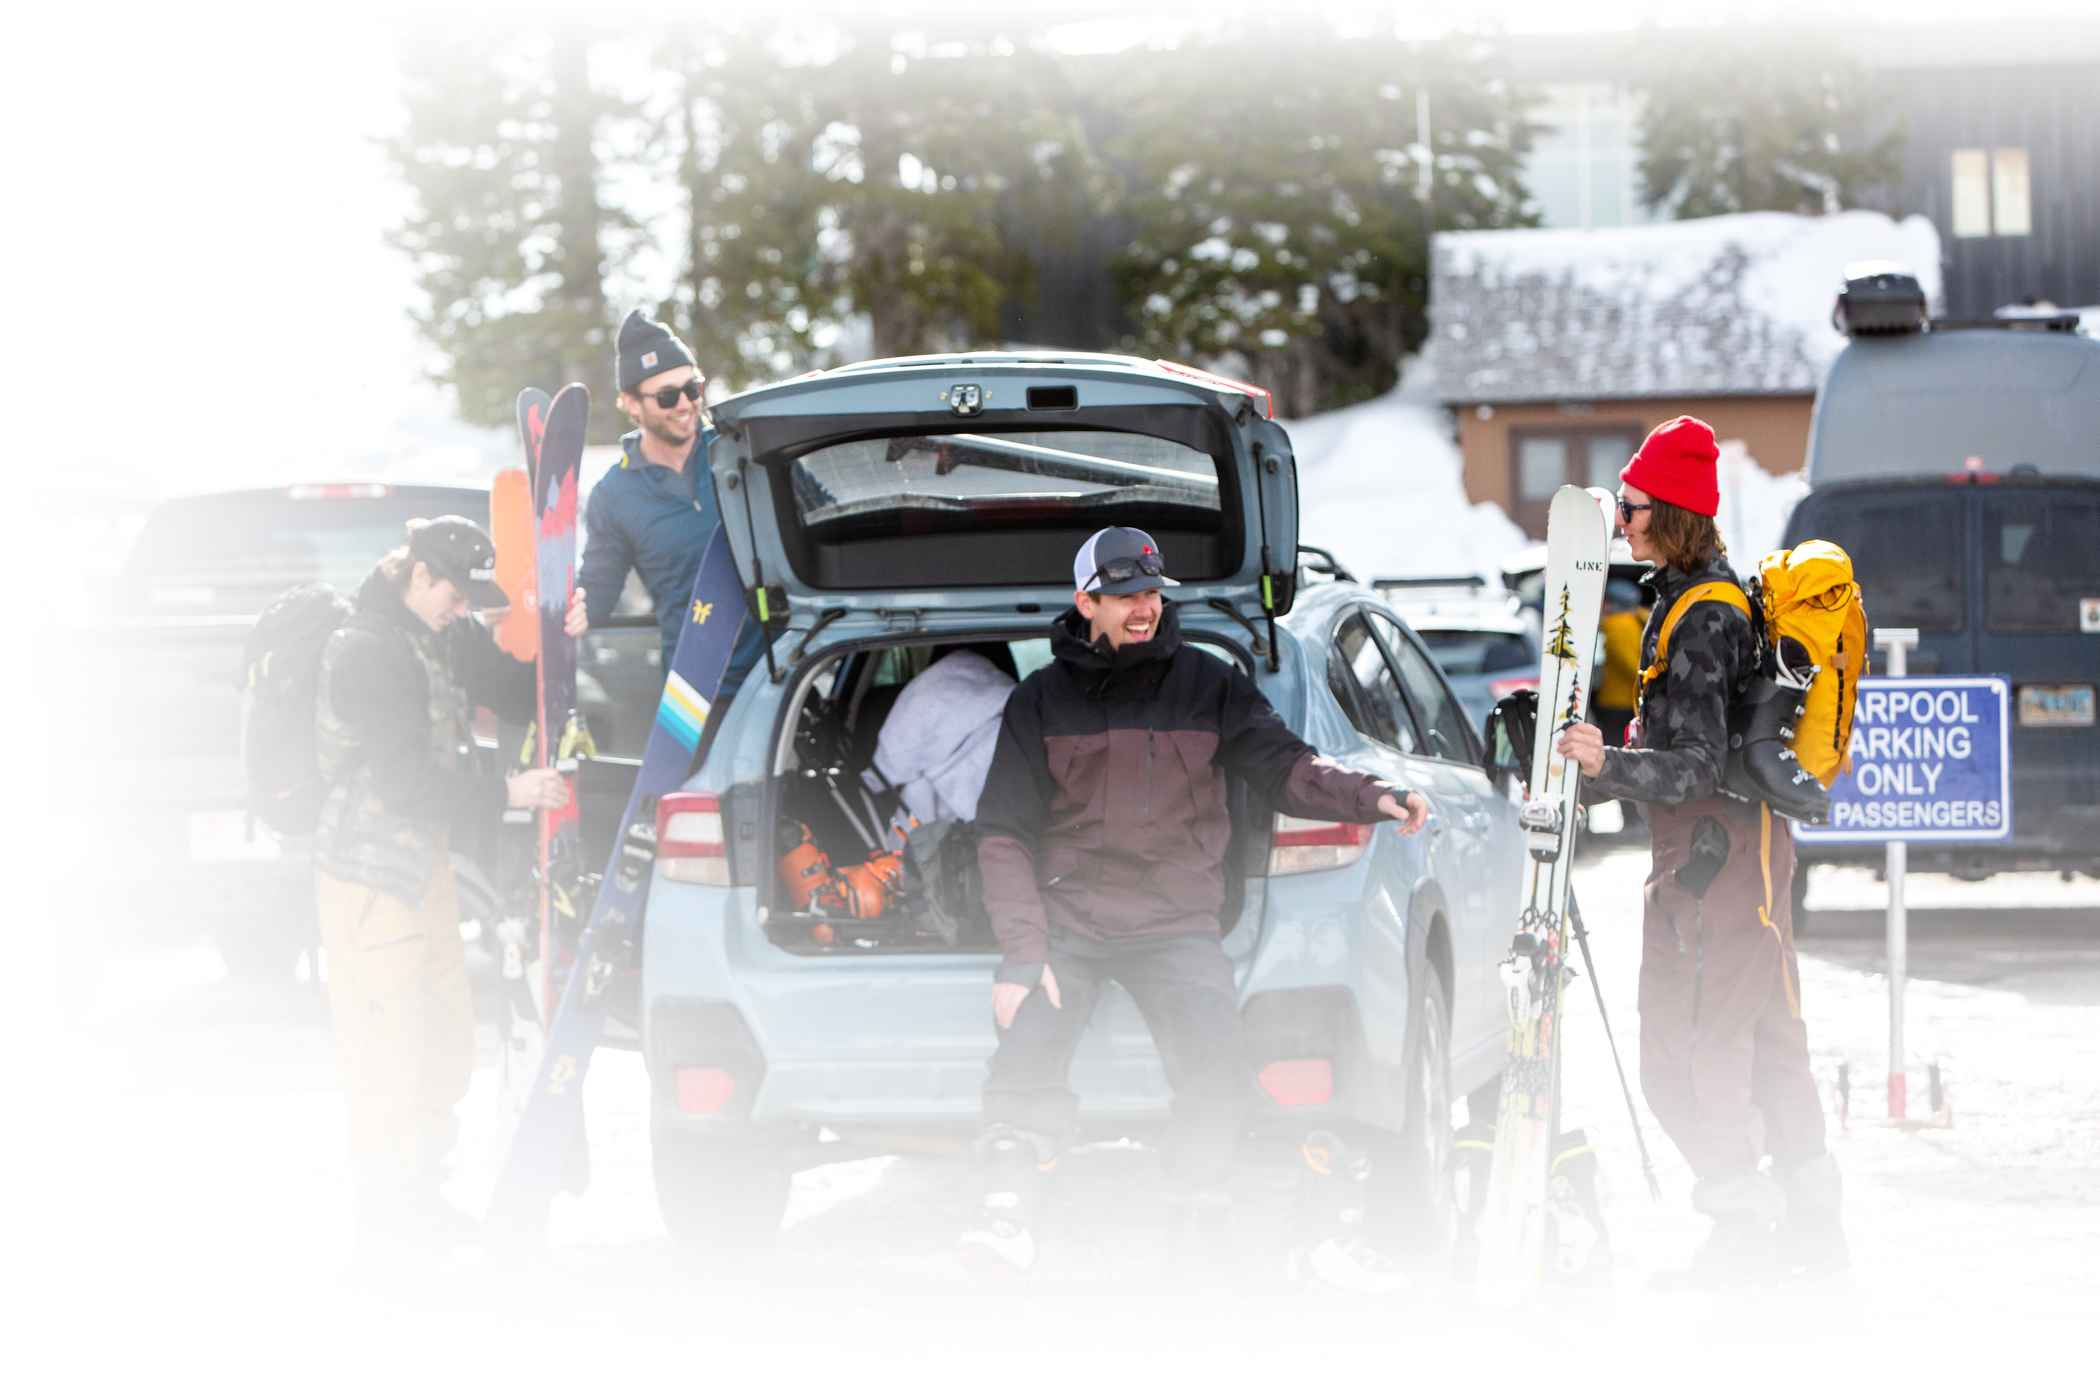 skiers enjoy prime carpool parking with the help of a new ride sharing app